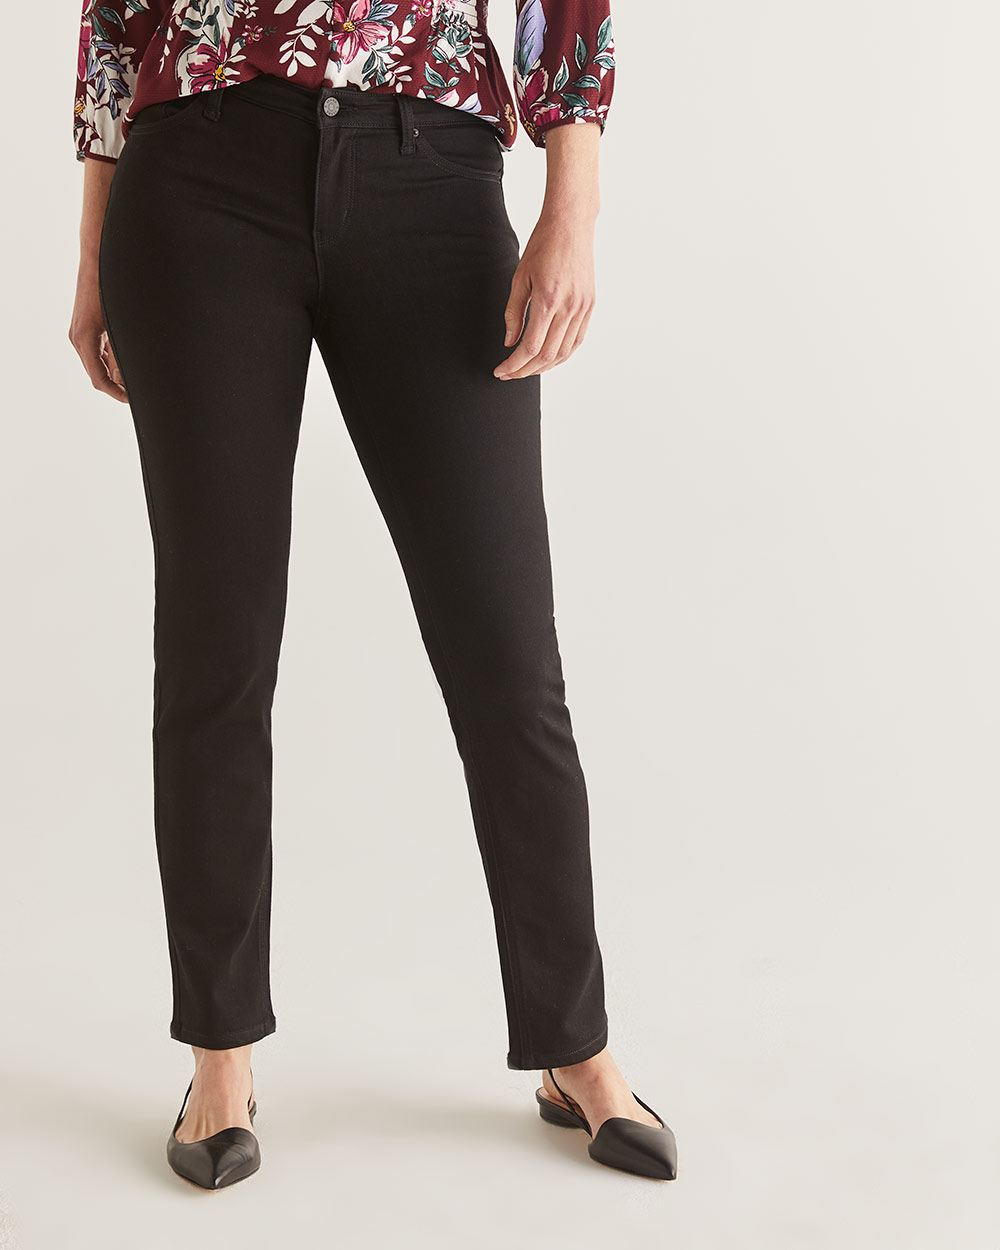 The Insider Black Straight Leg Jeans - Tall